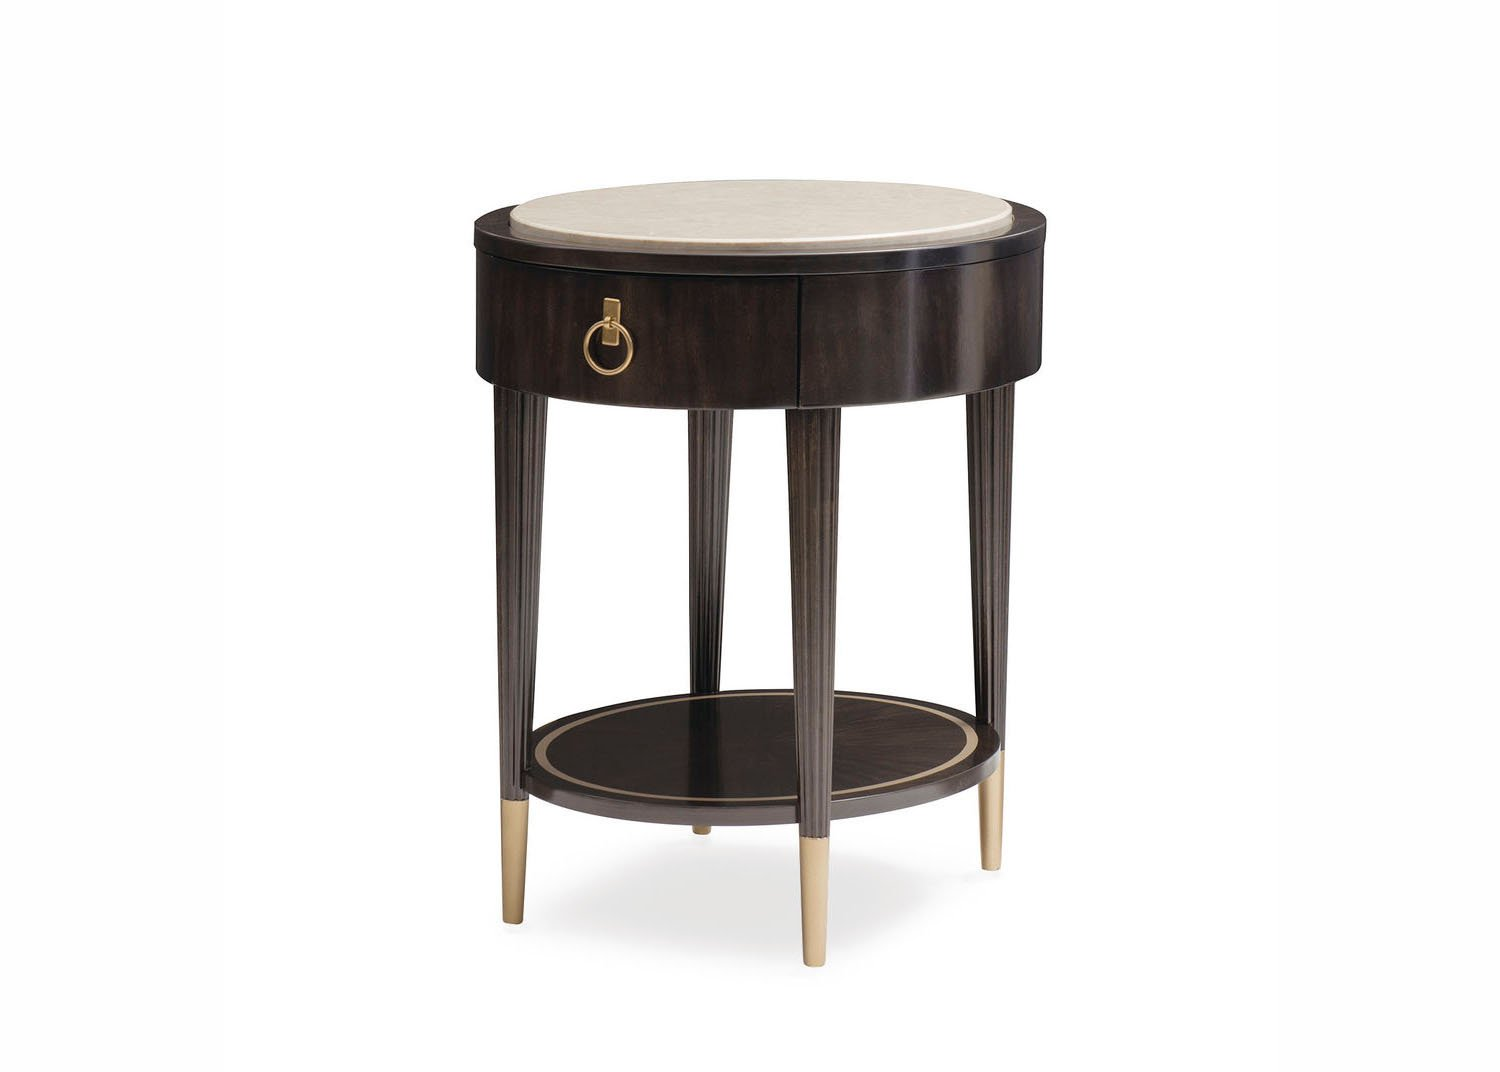 harlow table d appoint ronde mobilart decor high end furniture. Black Bedroom Furniture Sets. Home Design Ideas